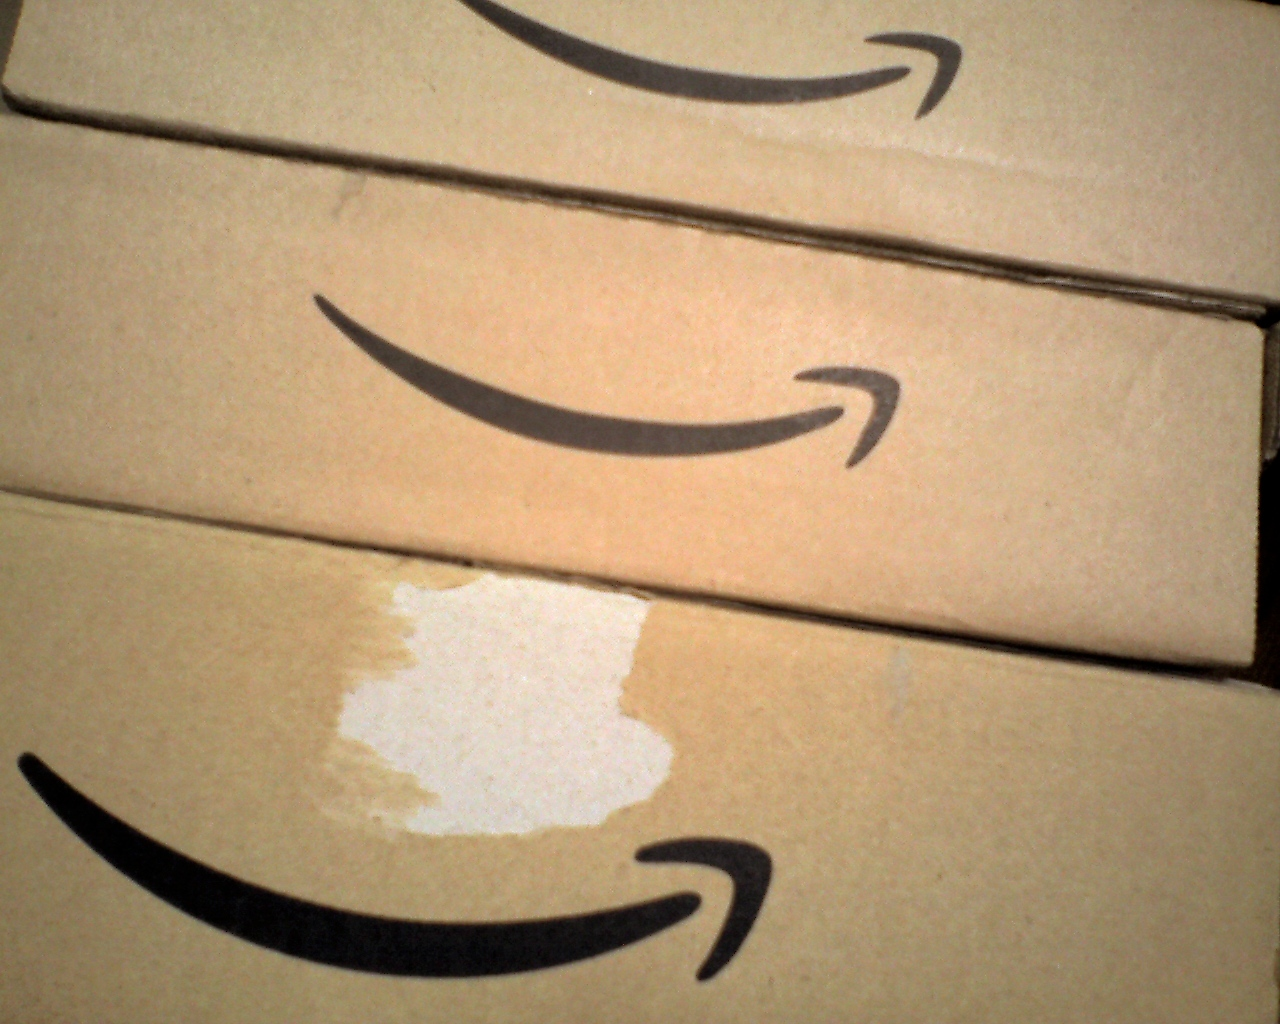 Amazon Flex Launches In Seattle, Allows Regular Joes To Earn Money Delivering Prime Now Packages